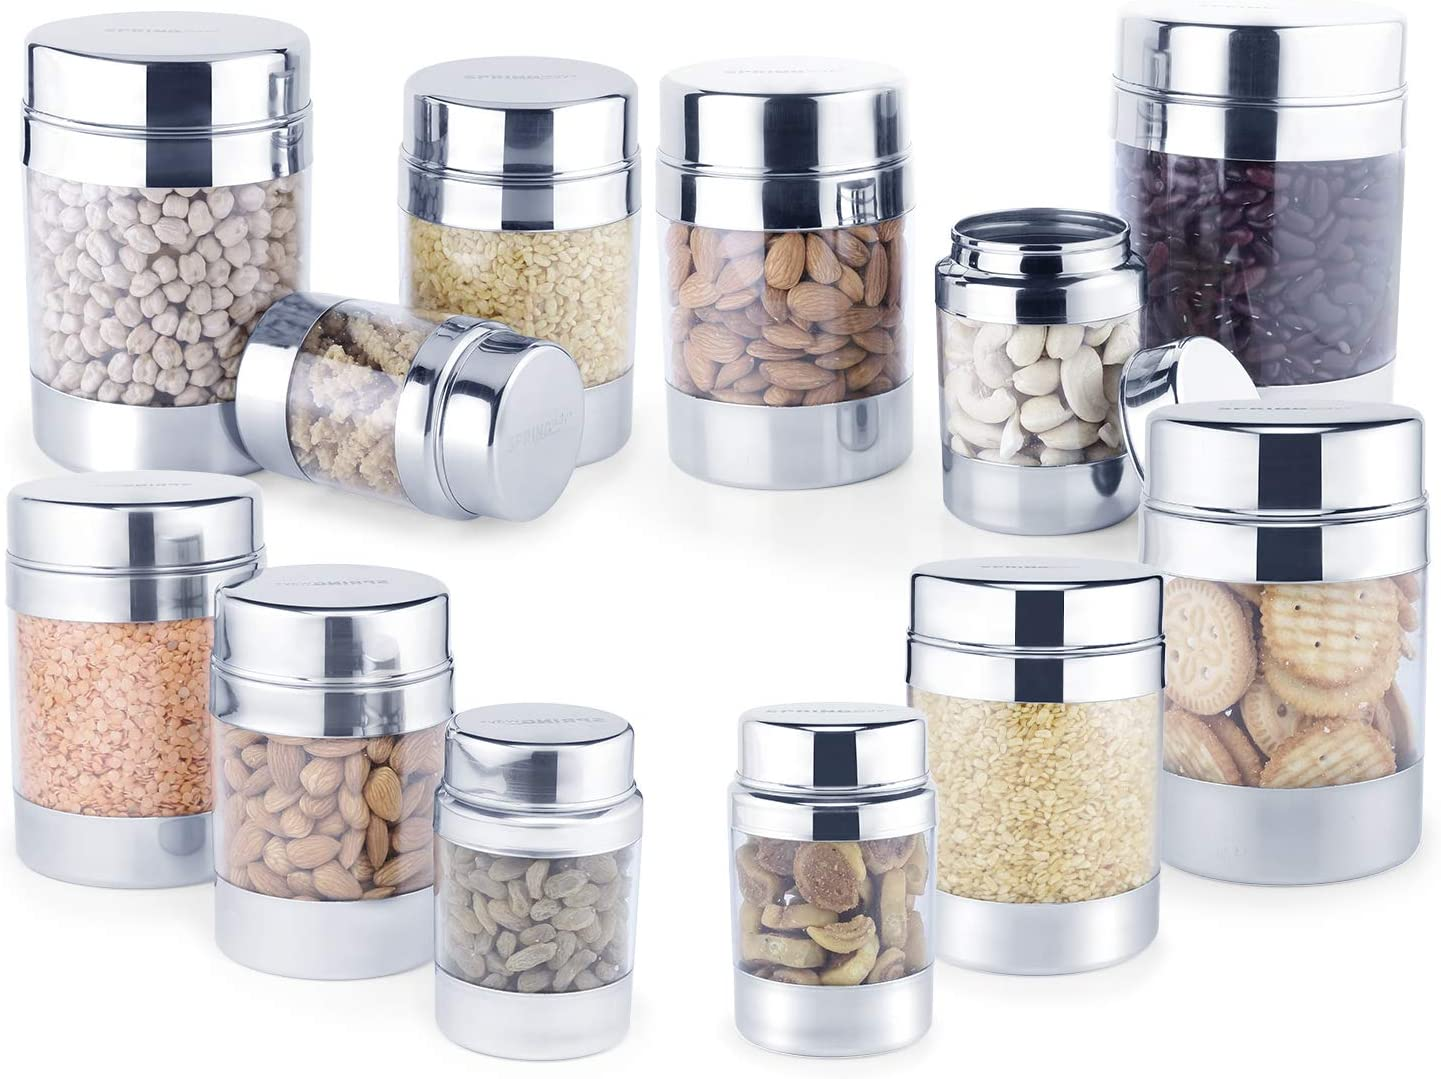 sold out SPRINGWAY - Brand of Happiness Stainless Super sale period limited Po Grade and Steel Food